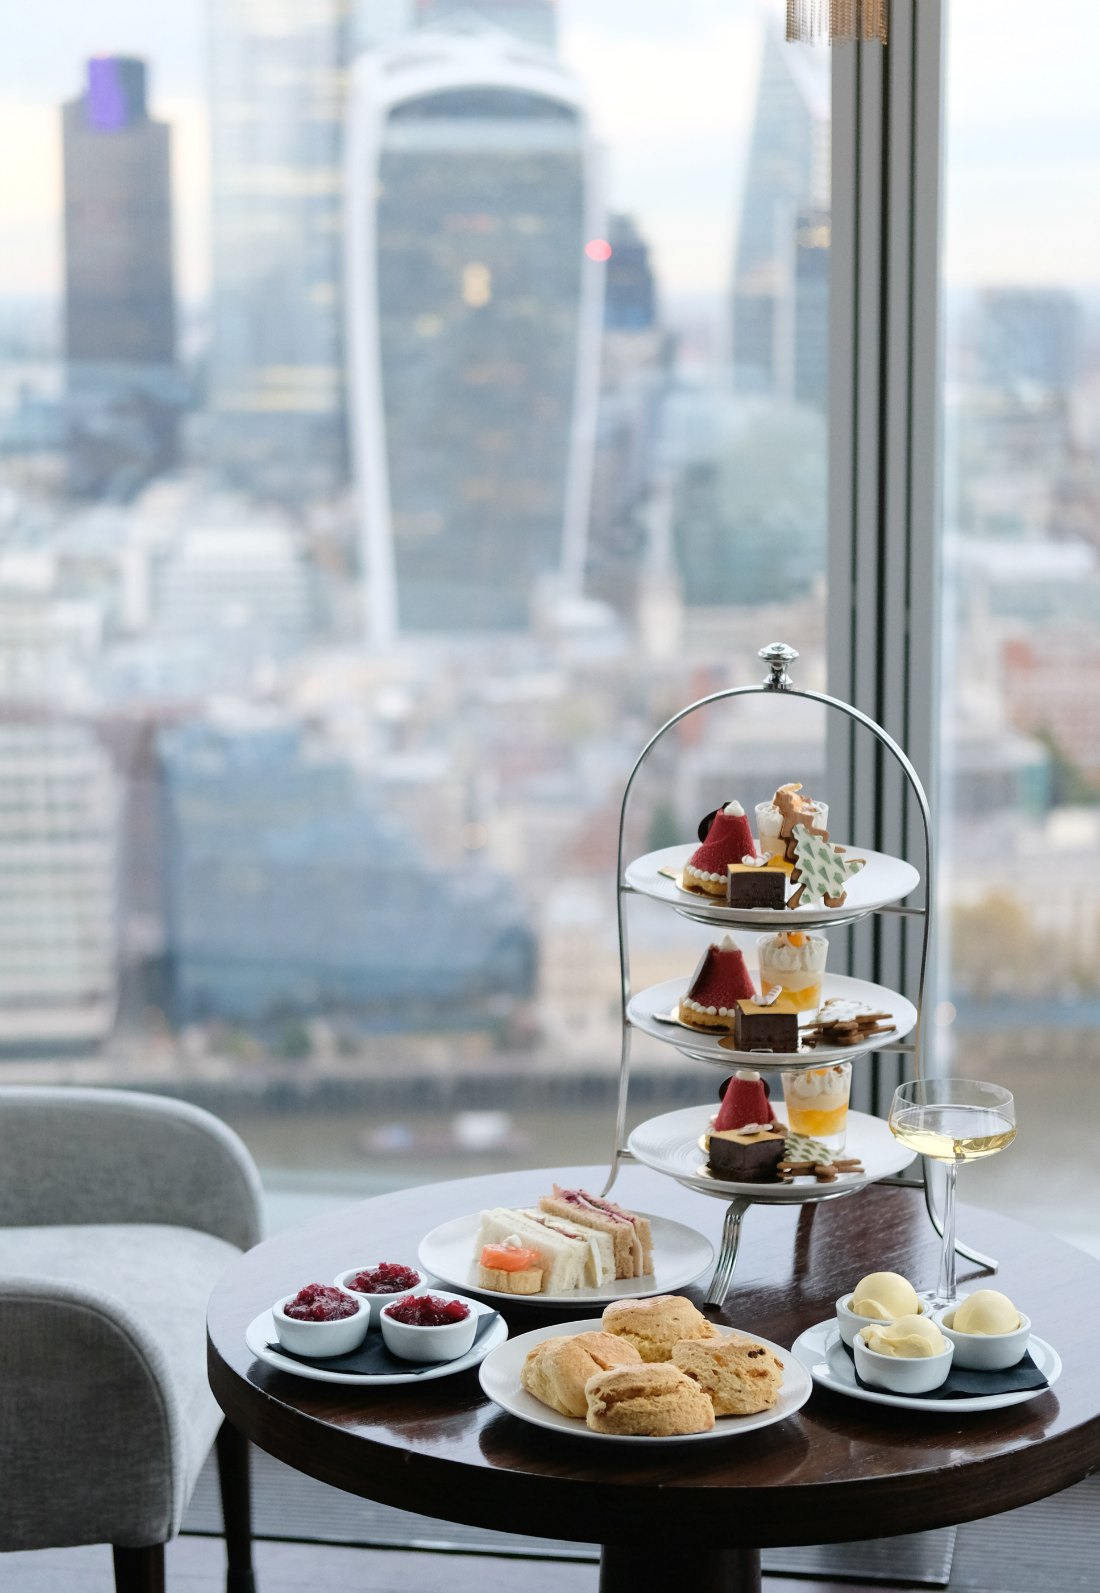 Aqua Shard London Festive Afternoon Tea